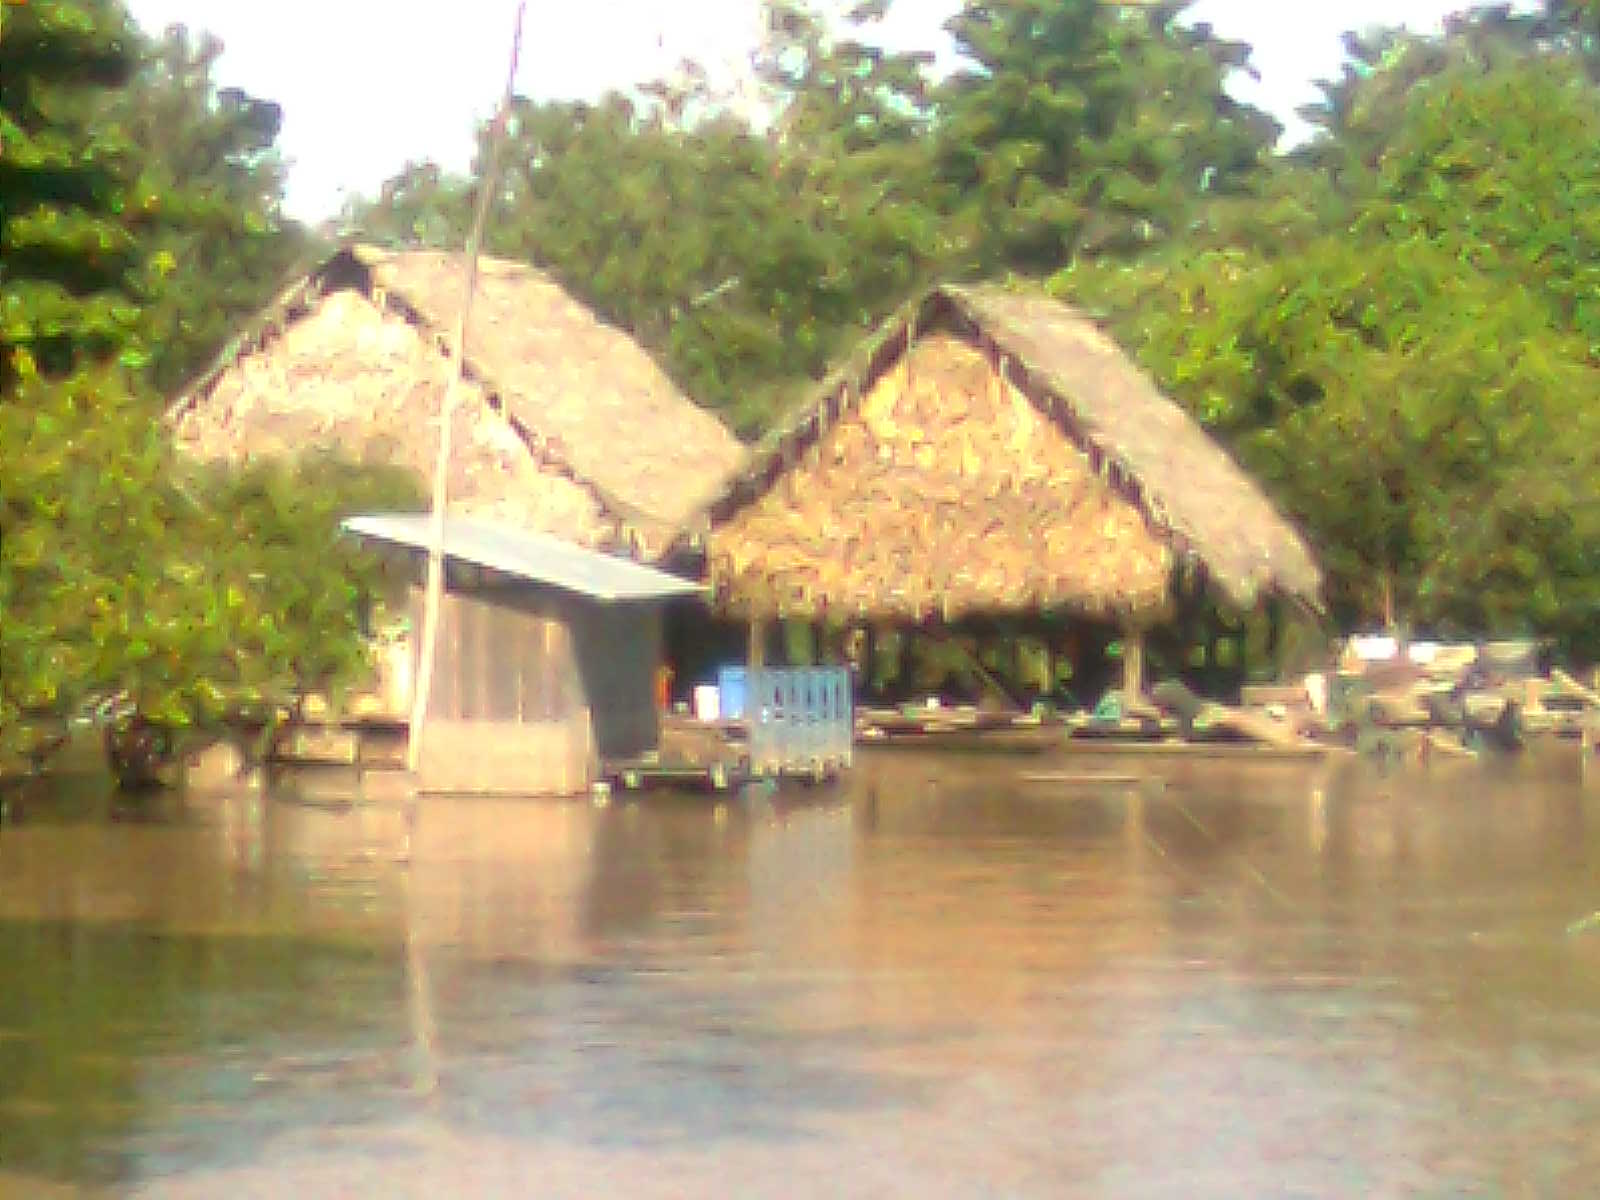 Lower Ucayali Flooding